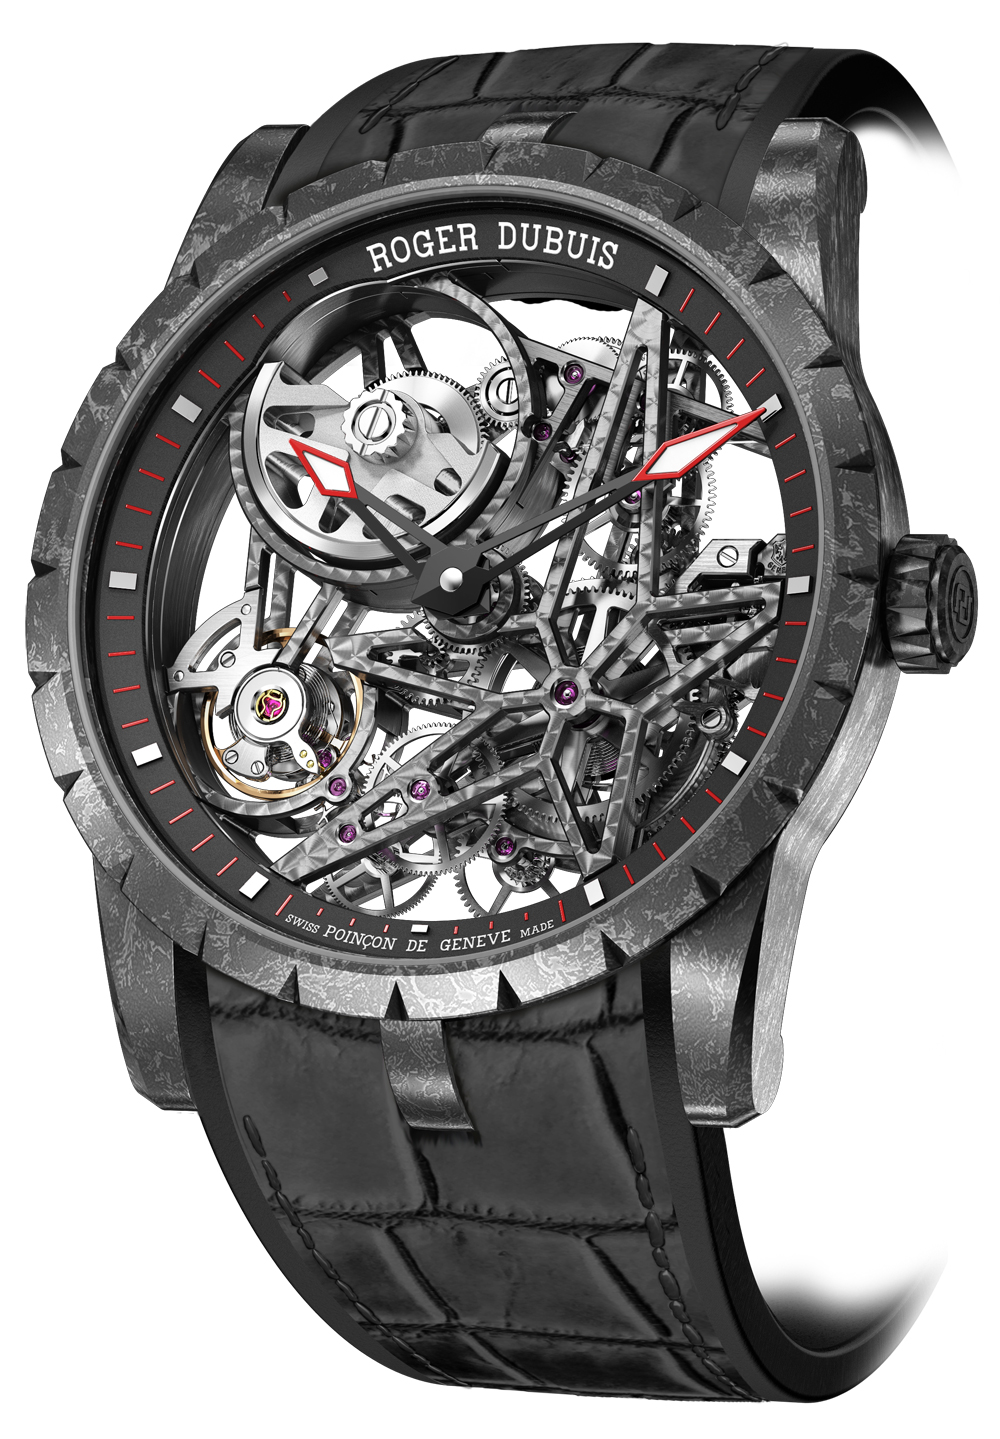 Excalibur Automatic Skeleton - Calibre RD820SQ con micro-rotor